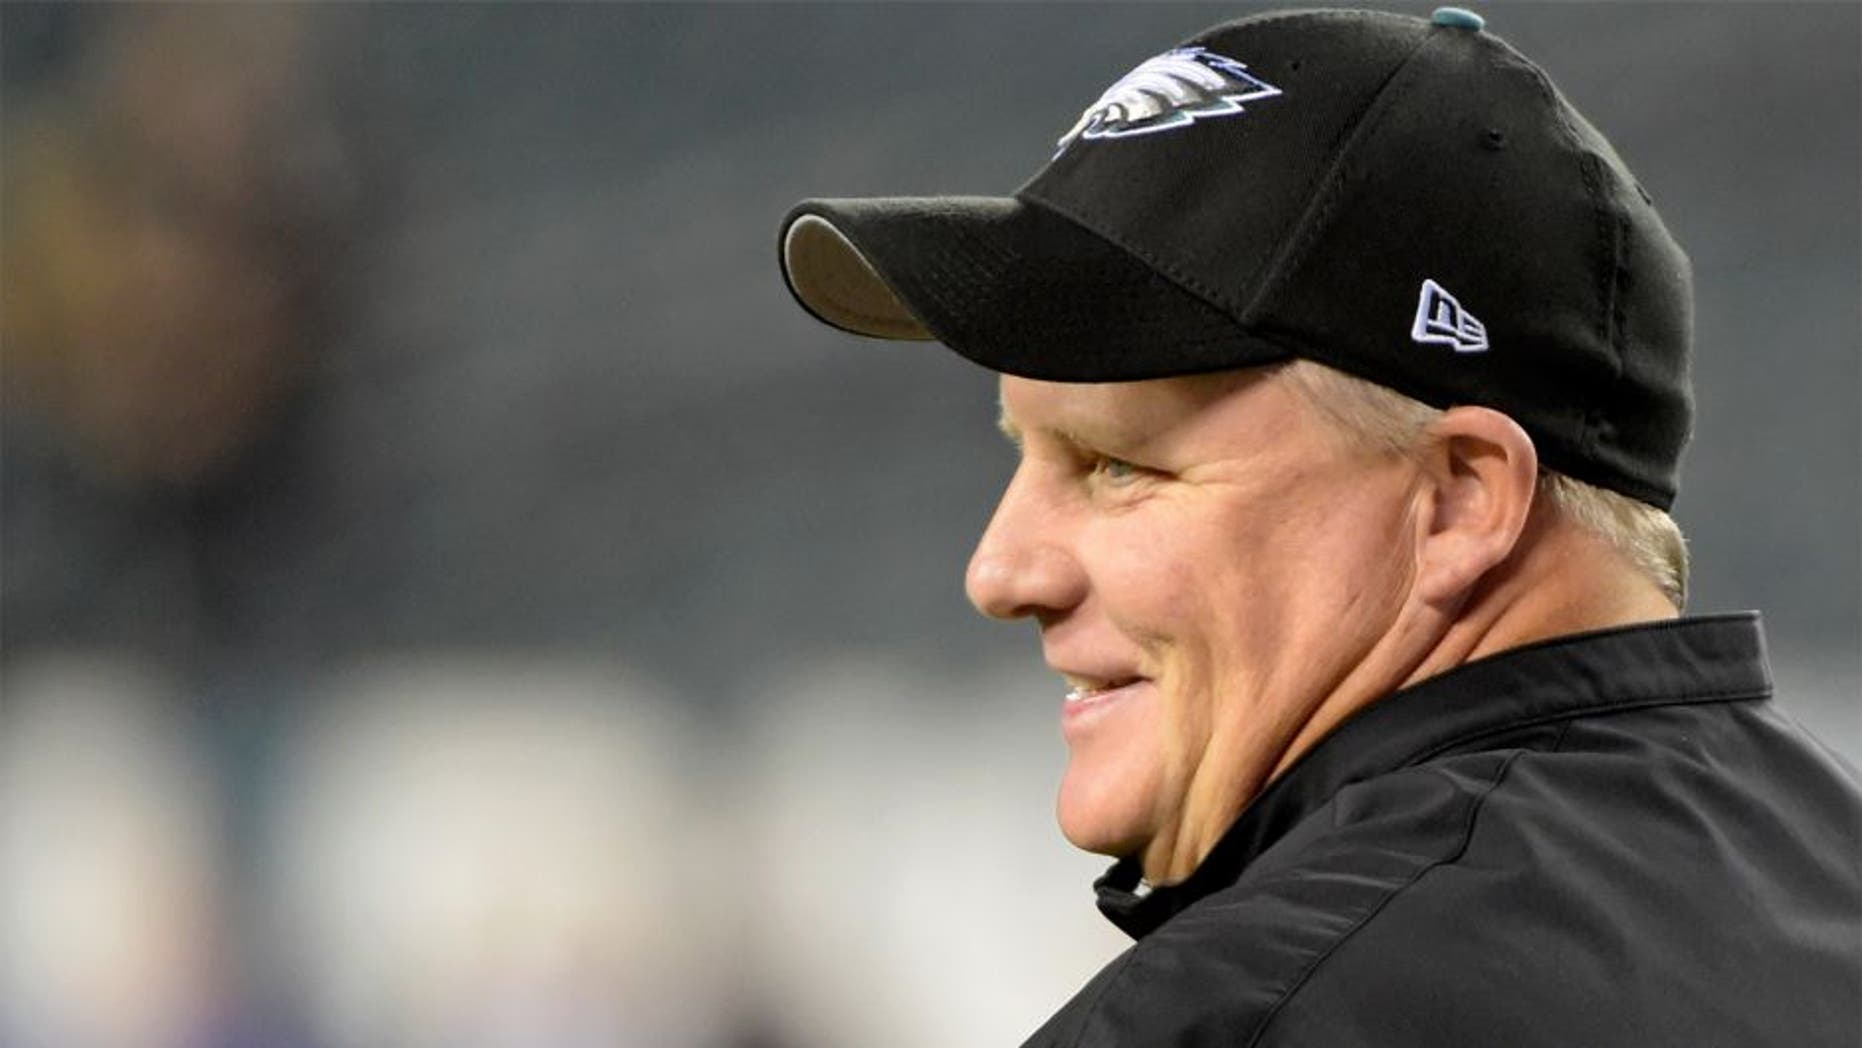 Oct 12, 2014; Philadelphia, PA, USA; Philadelphia Eagles head coach Chip Kelly during pre game warmups before game against the New York Giants at Lincoln Financial Field. Mandatory Credit: Eric Hartline-USA TODAY Sports